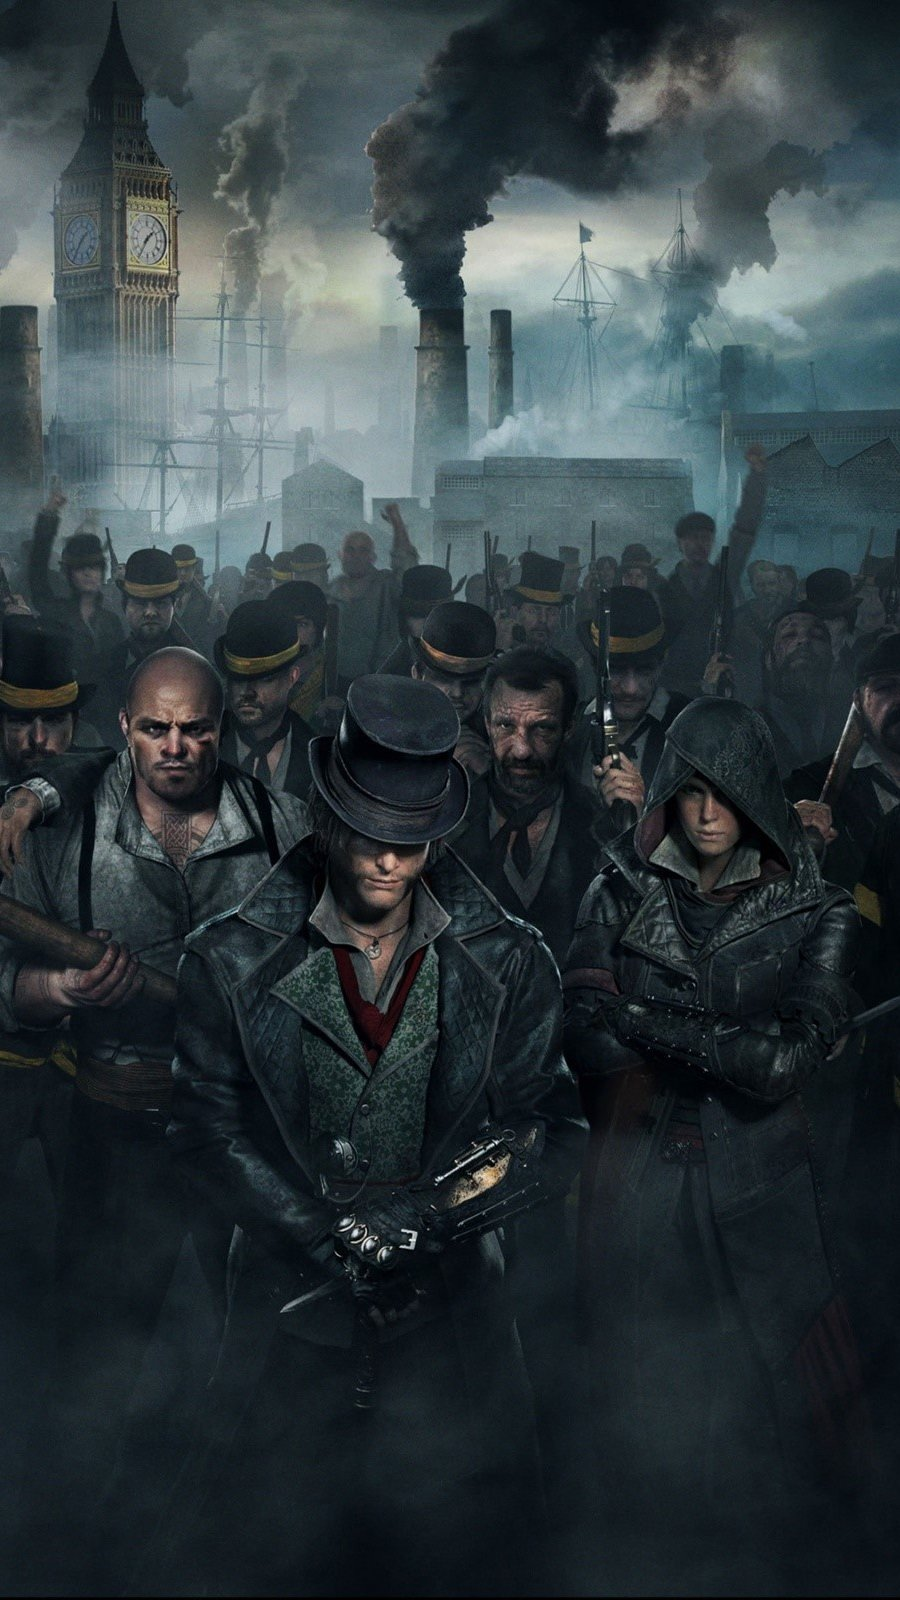 Wallpaper A crowd at Assassins Creed Syndicate Vertical